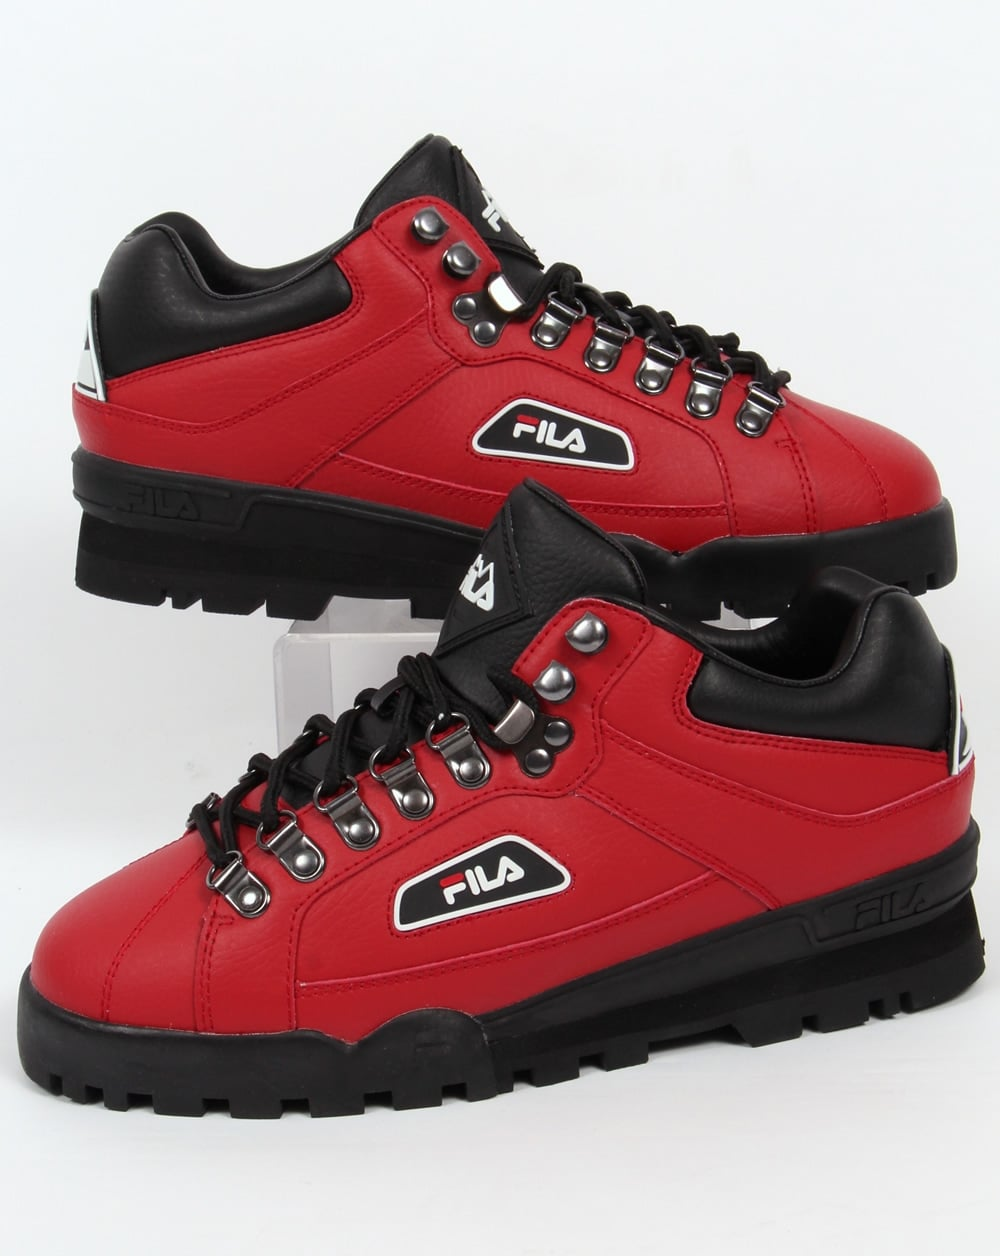 Fila Vintage Trailblazer Boots Red Leather Hiking Mens  Biking